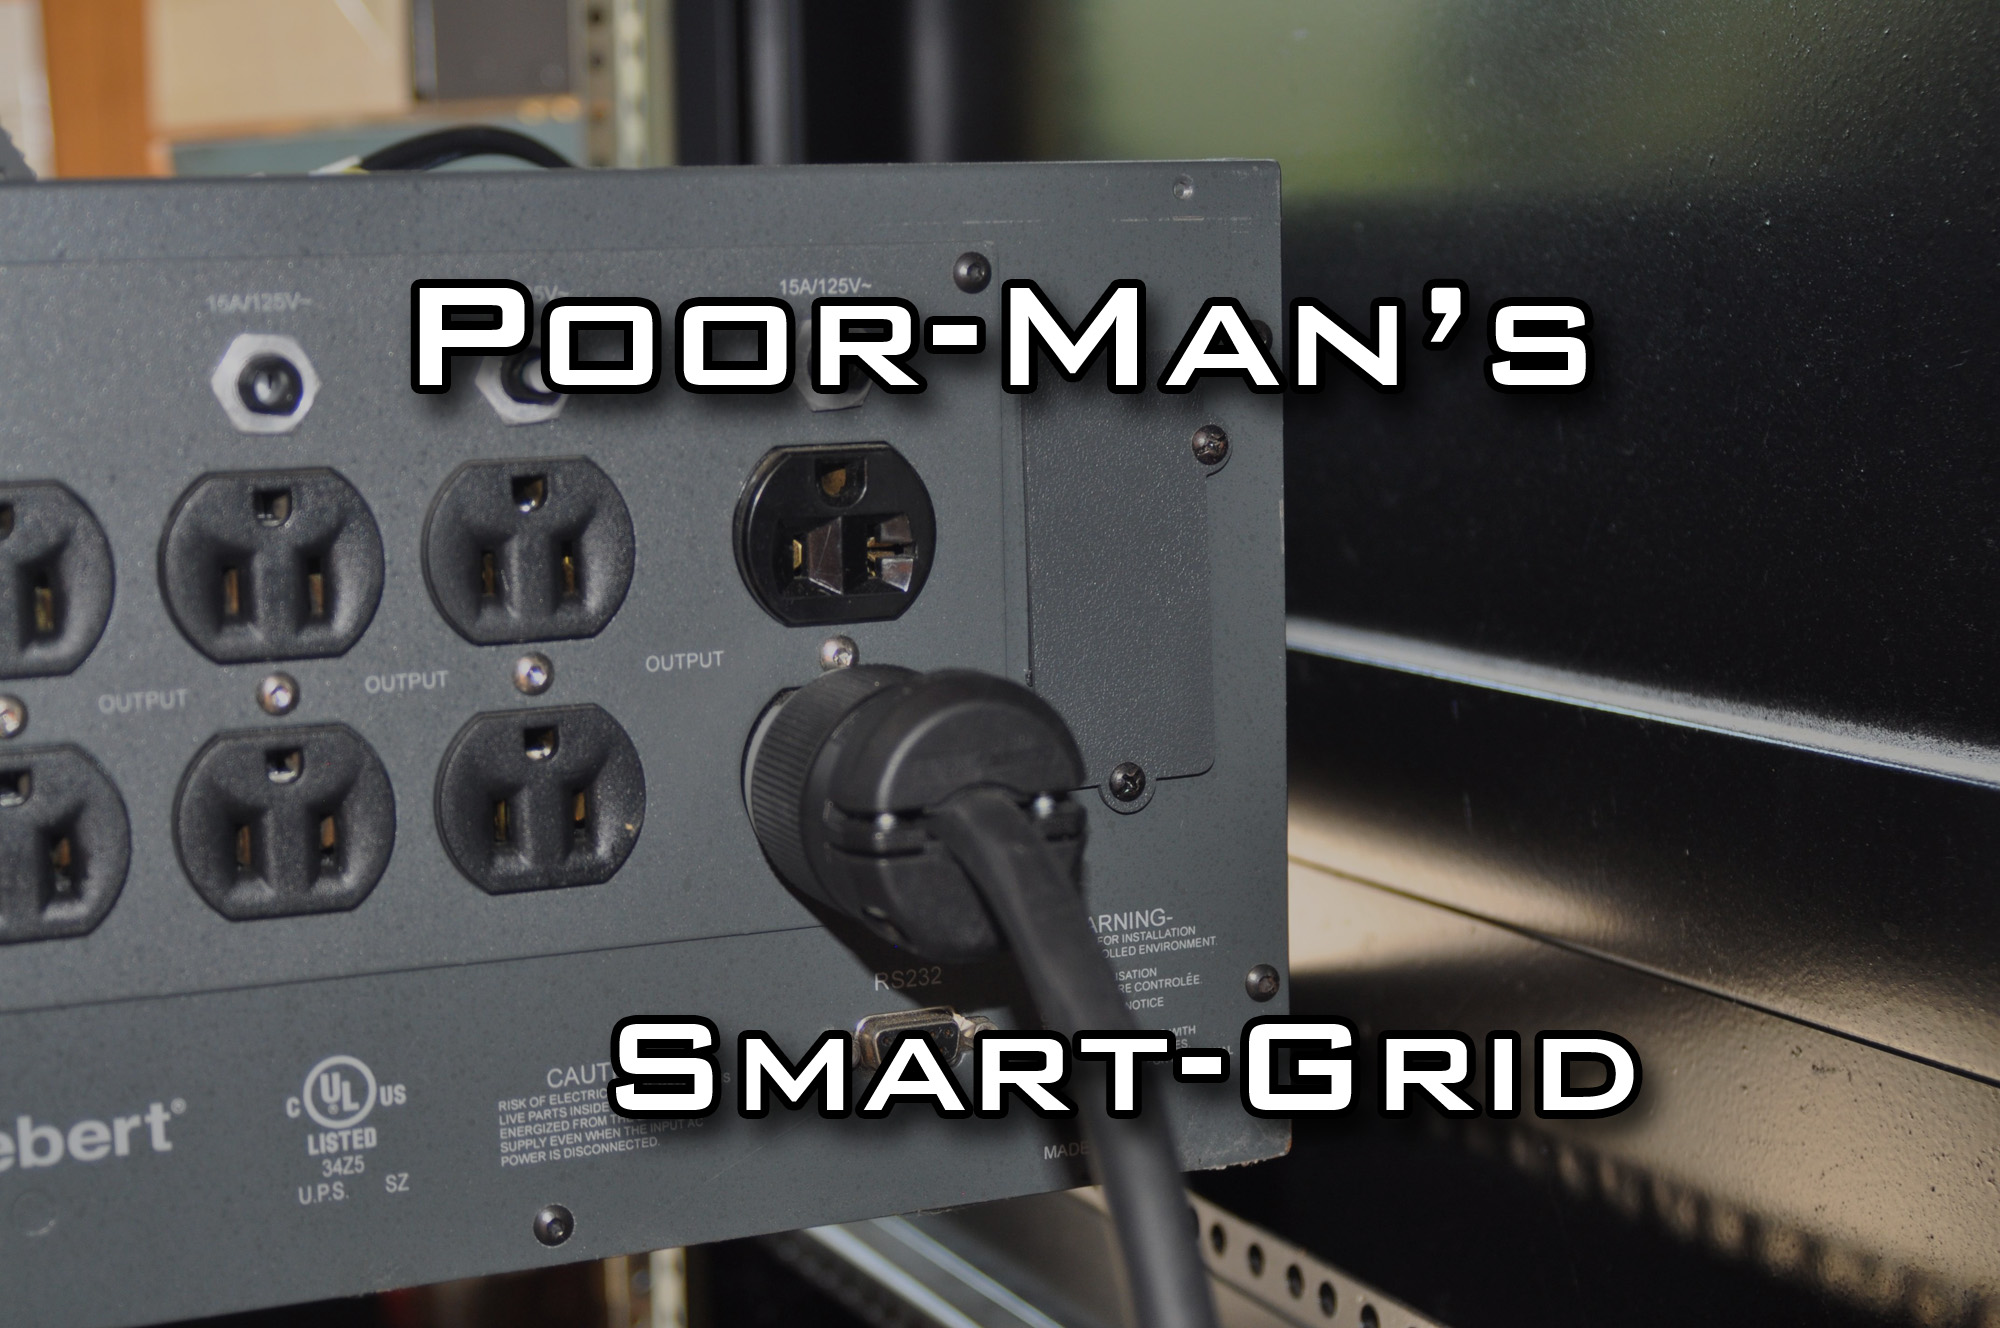 Poor-Mans Smart-Grid - Blackout Protection by UPS and Electric Motorcycle